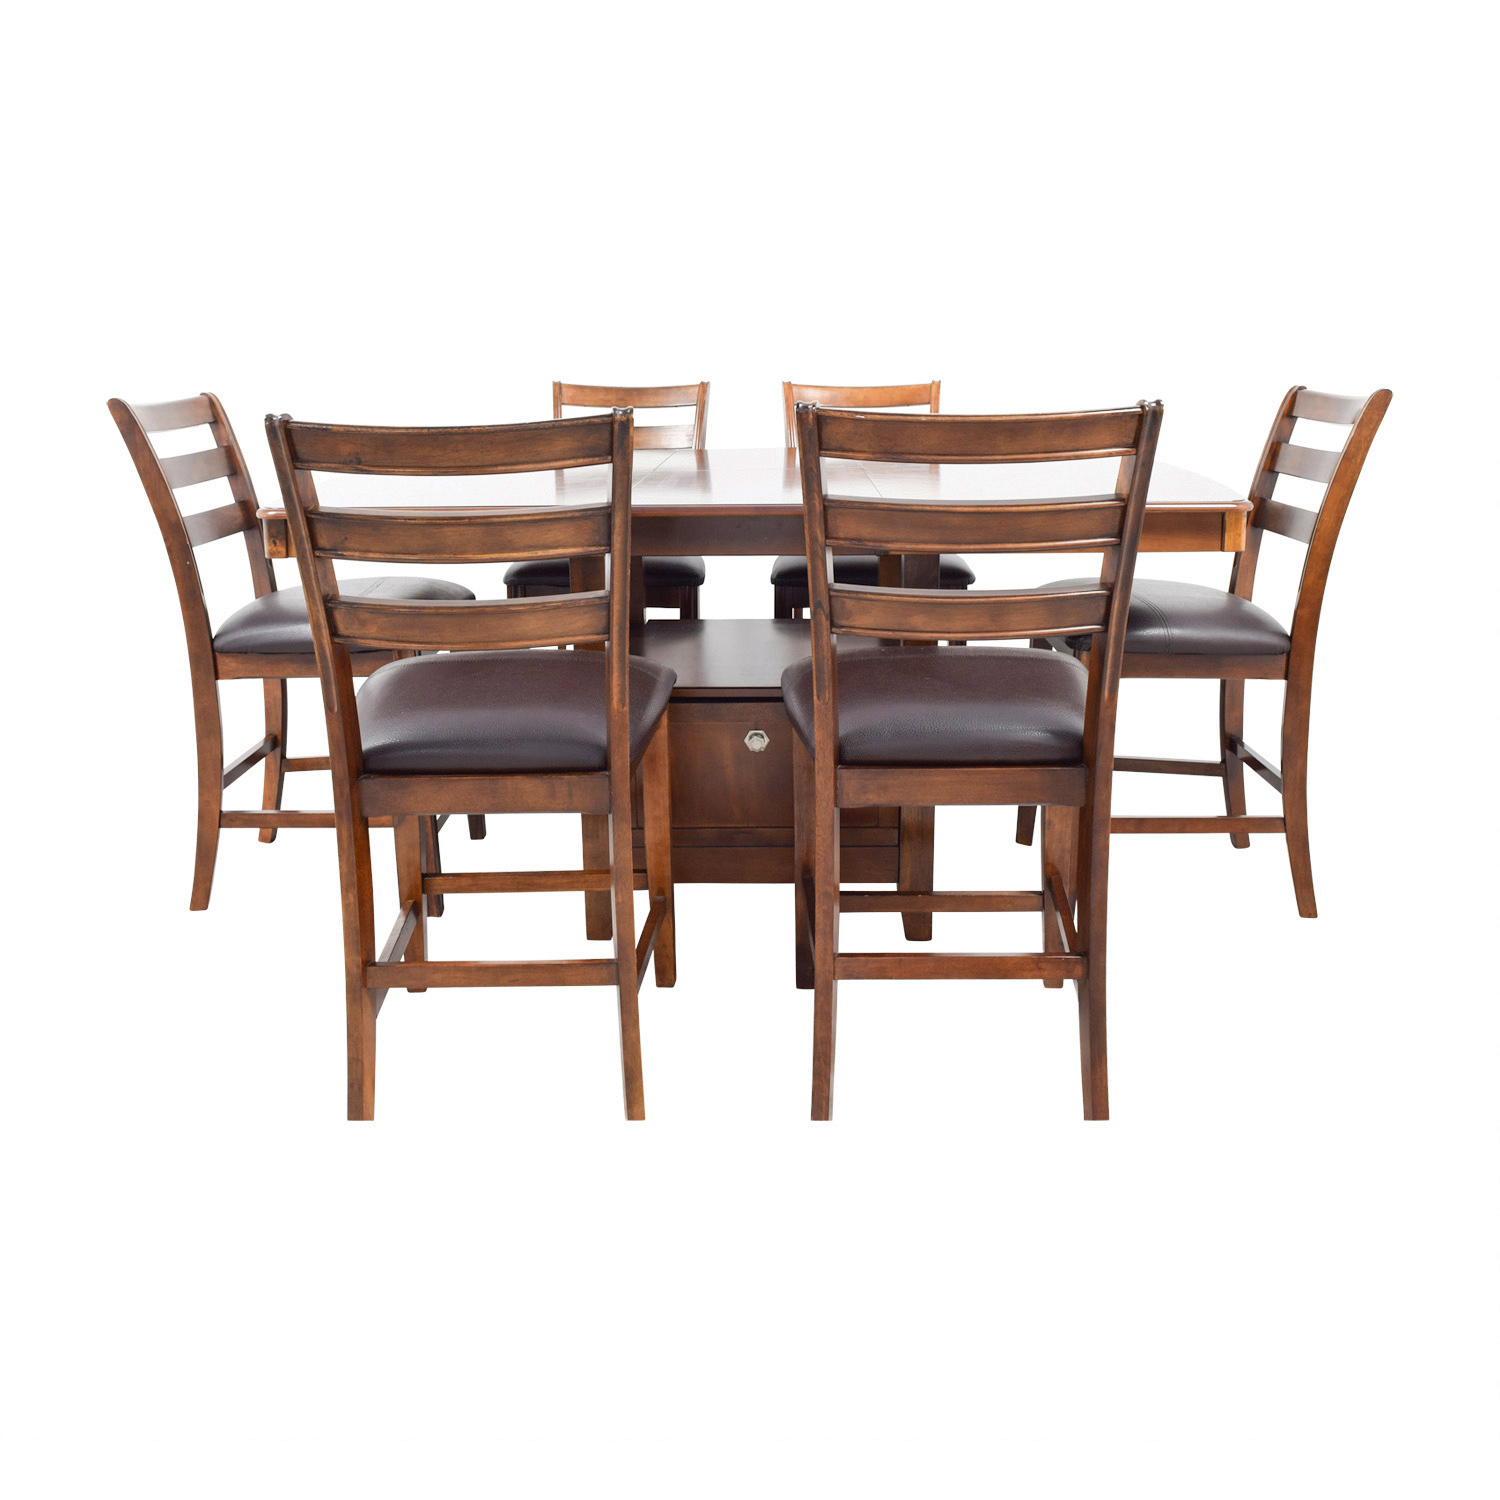 Bobs Dining Room Sets: Bob's Discount Furniture Bob's Furniture Counter